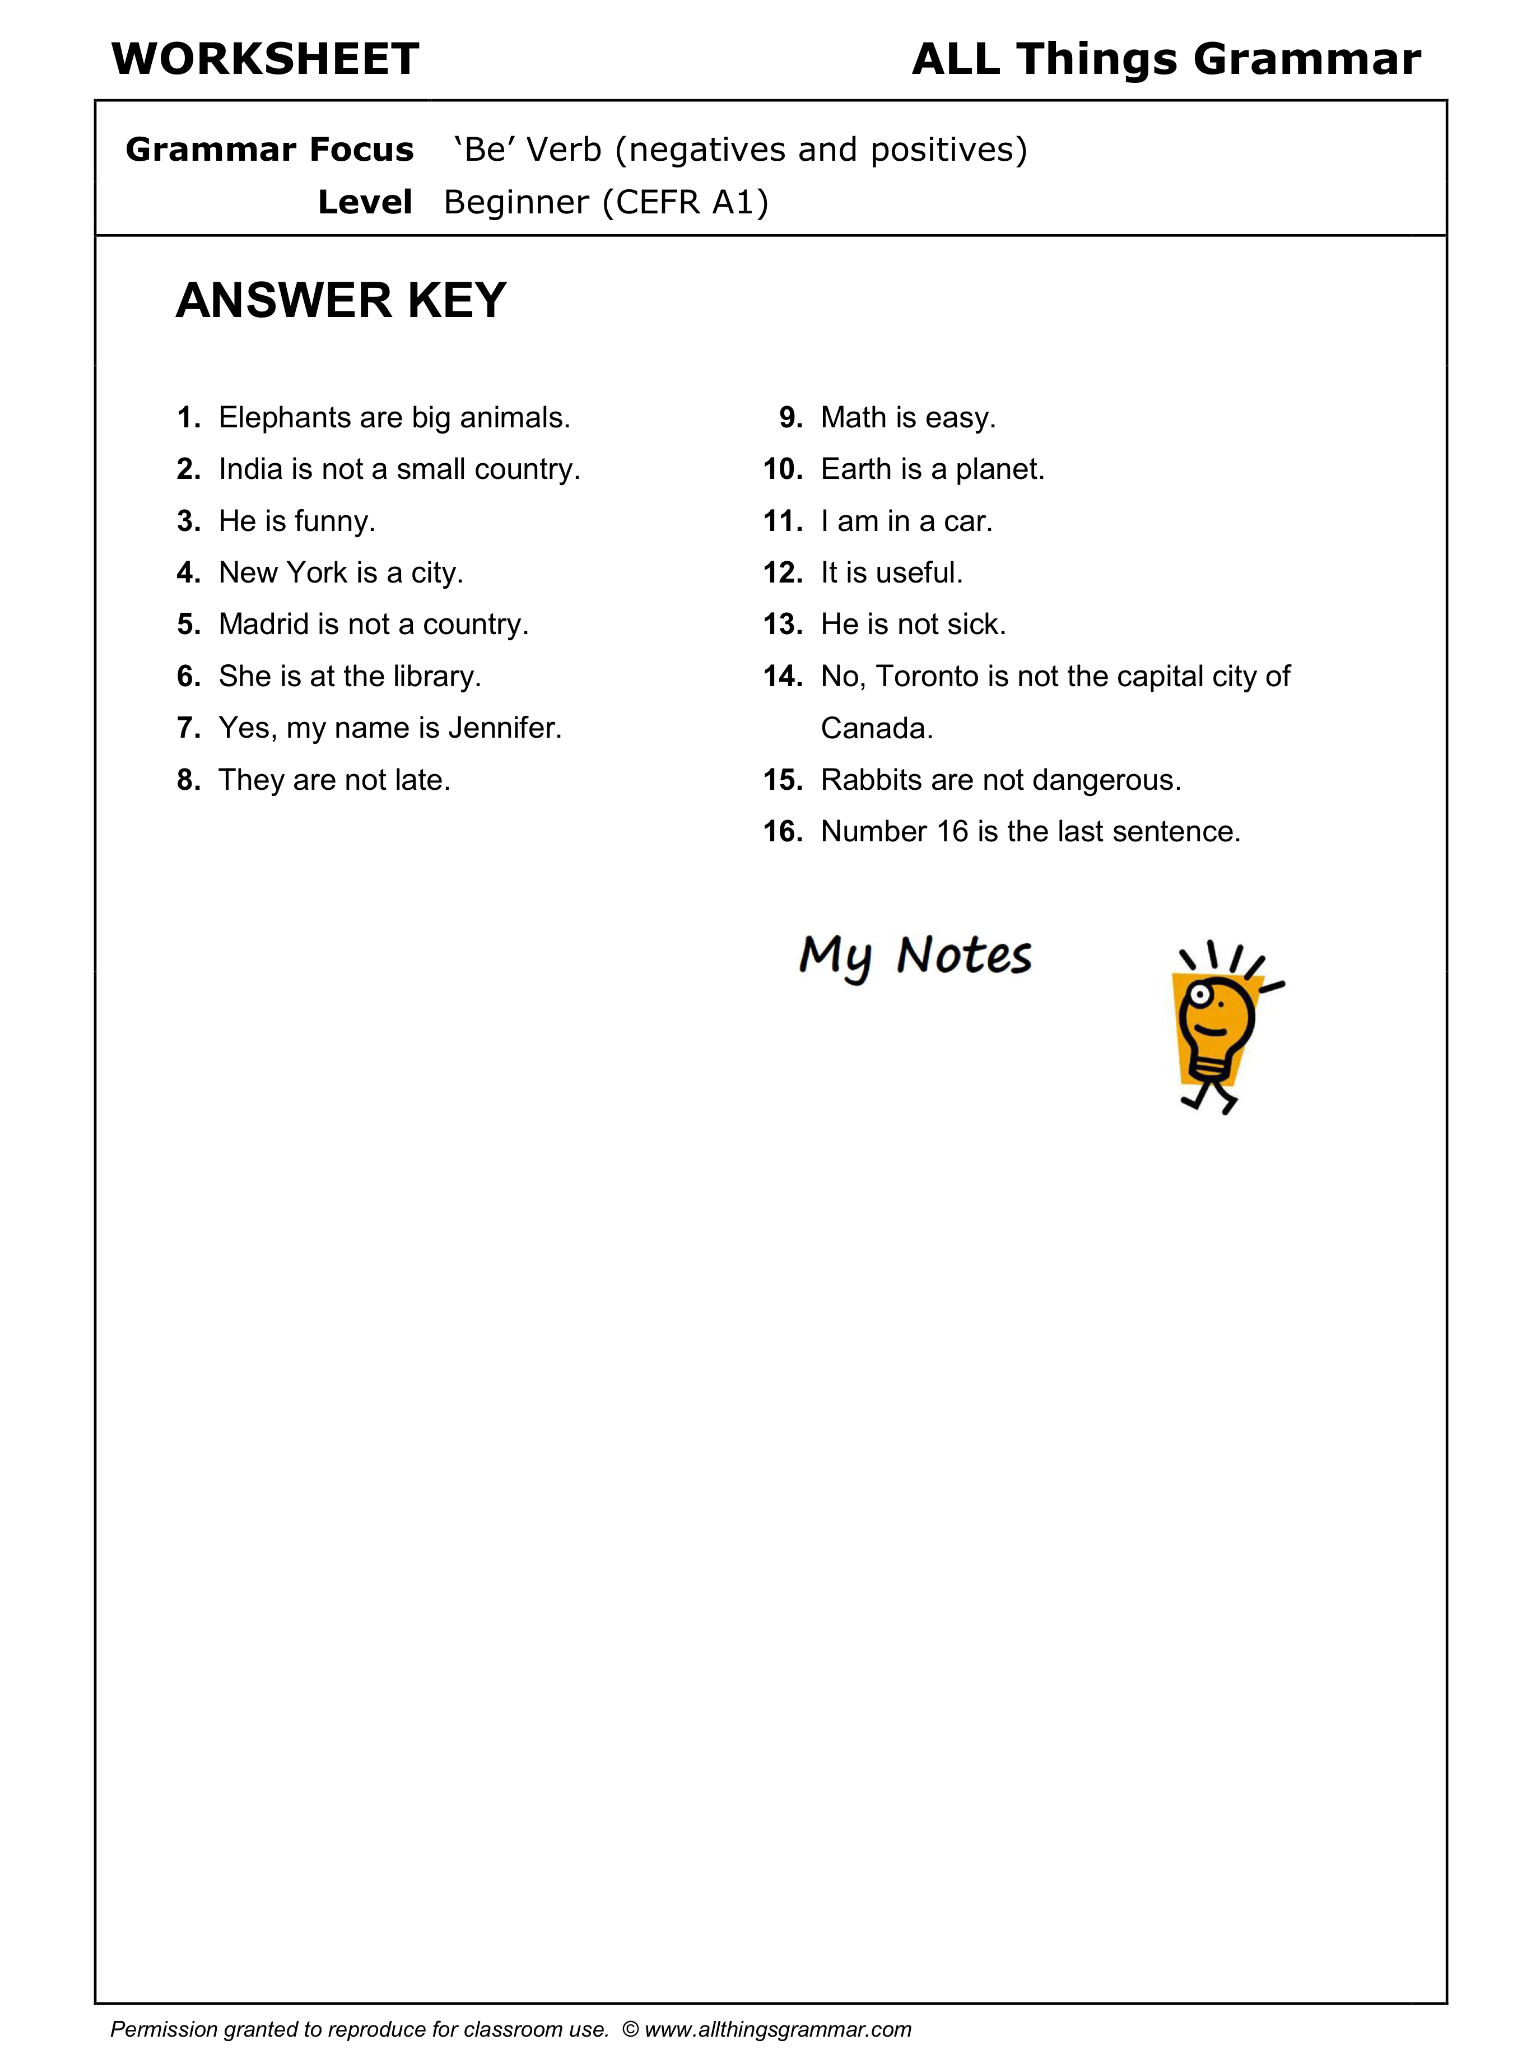 English Grammar Worksheet Be Verb Negatives And